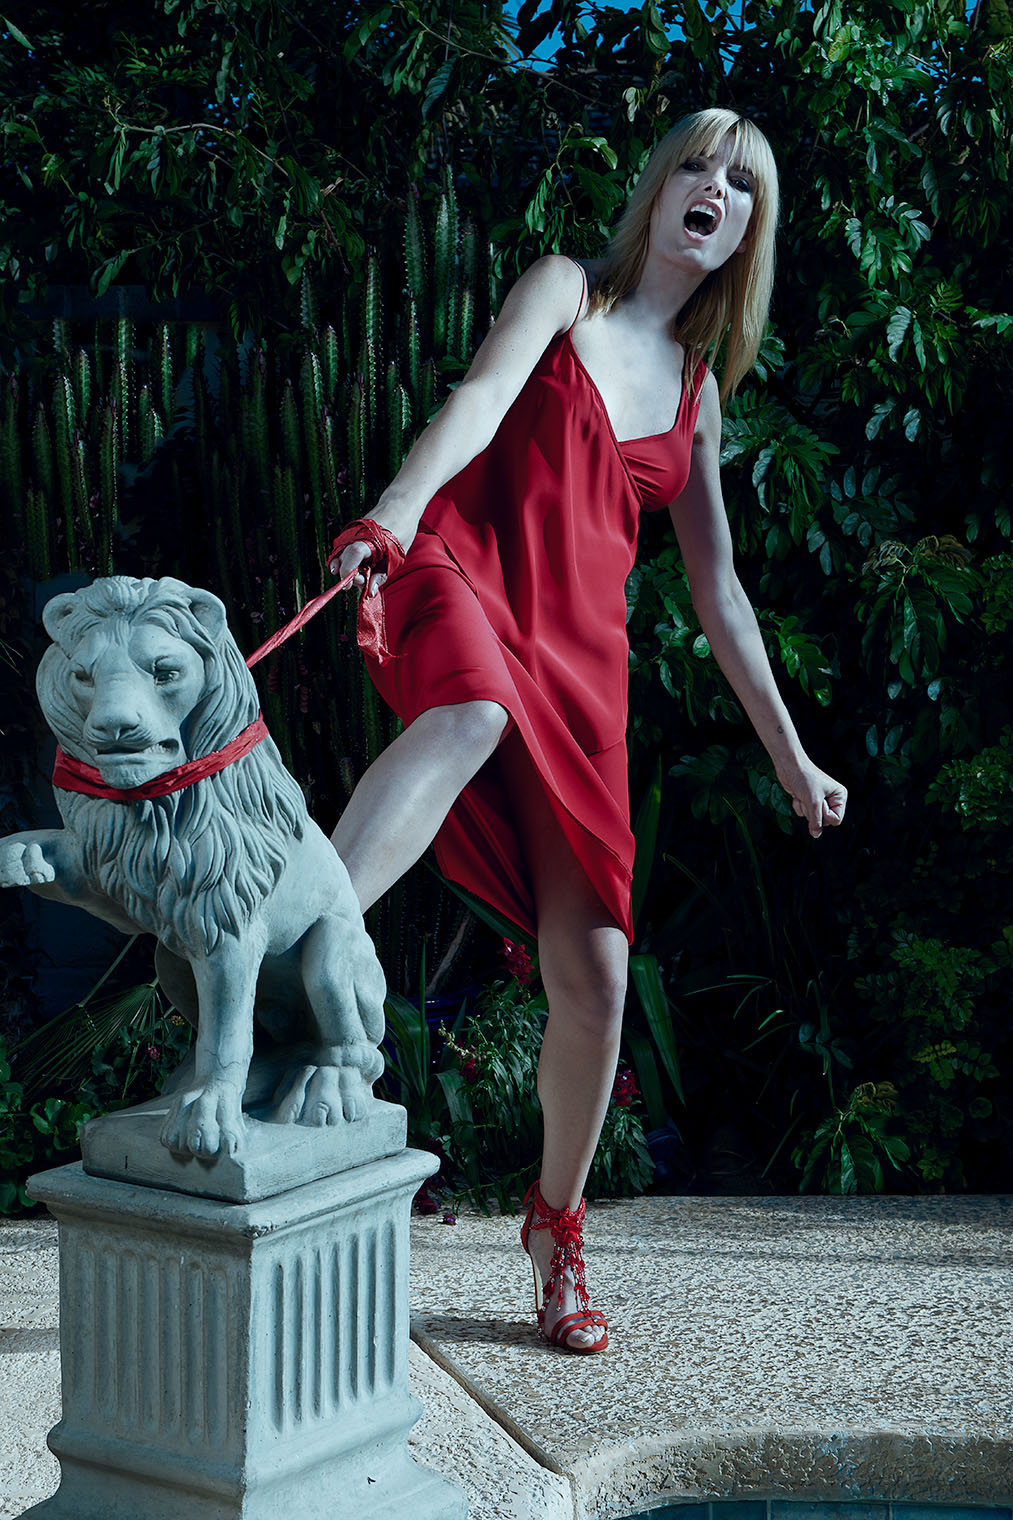 woman in red silk dress fighting a stone lion in lookbook photo shoot by photographer Robert Wilde